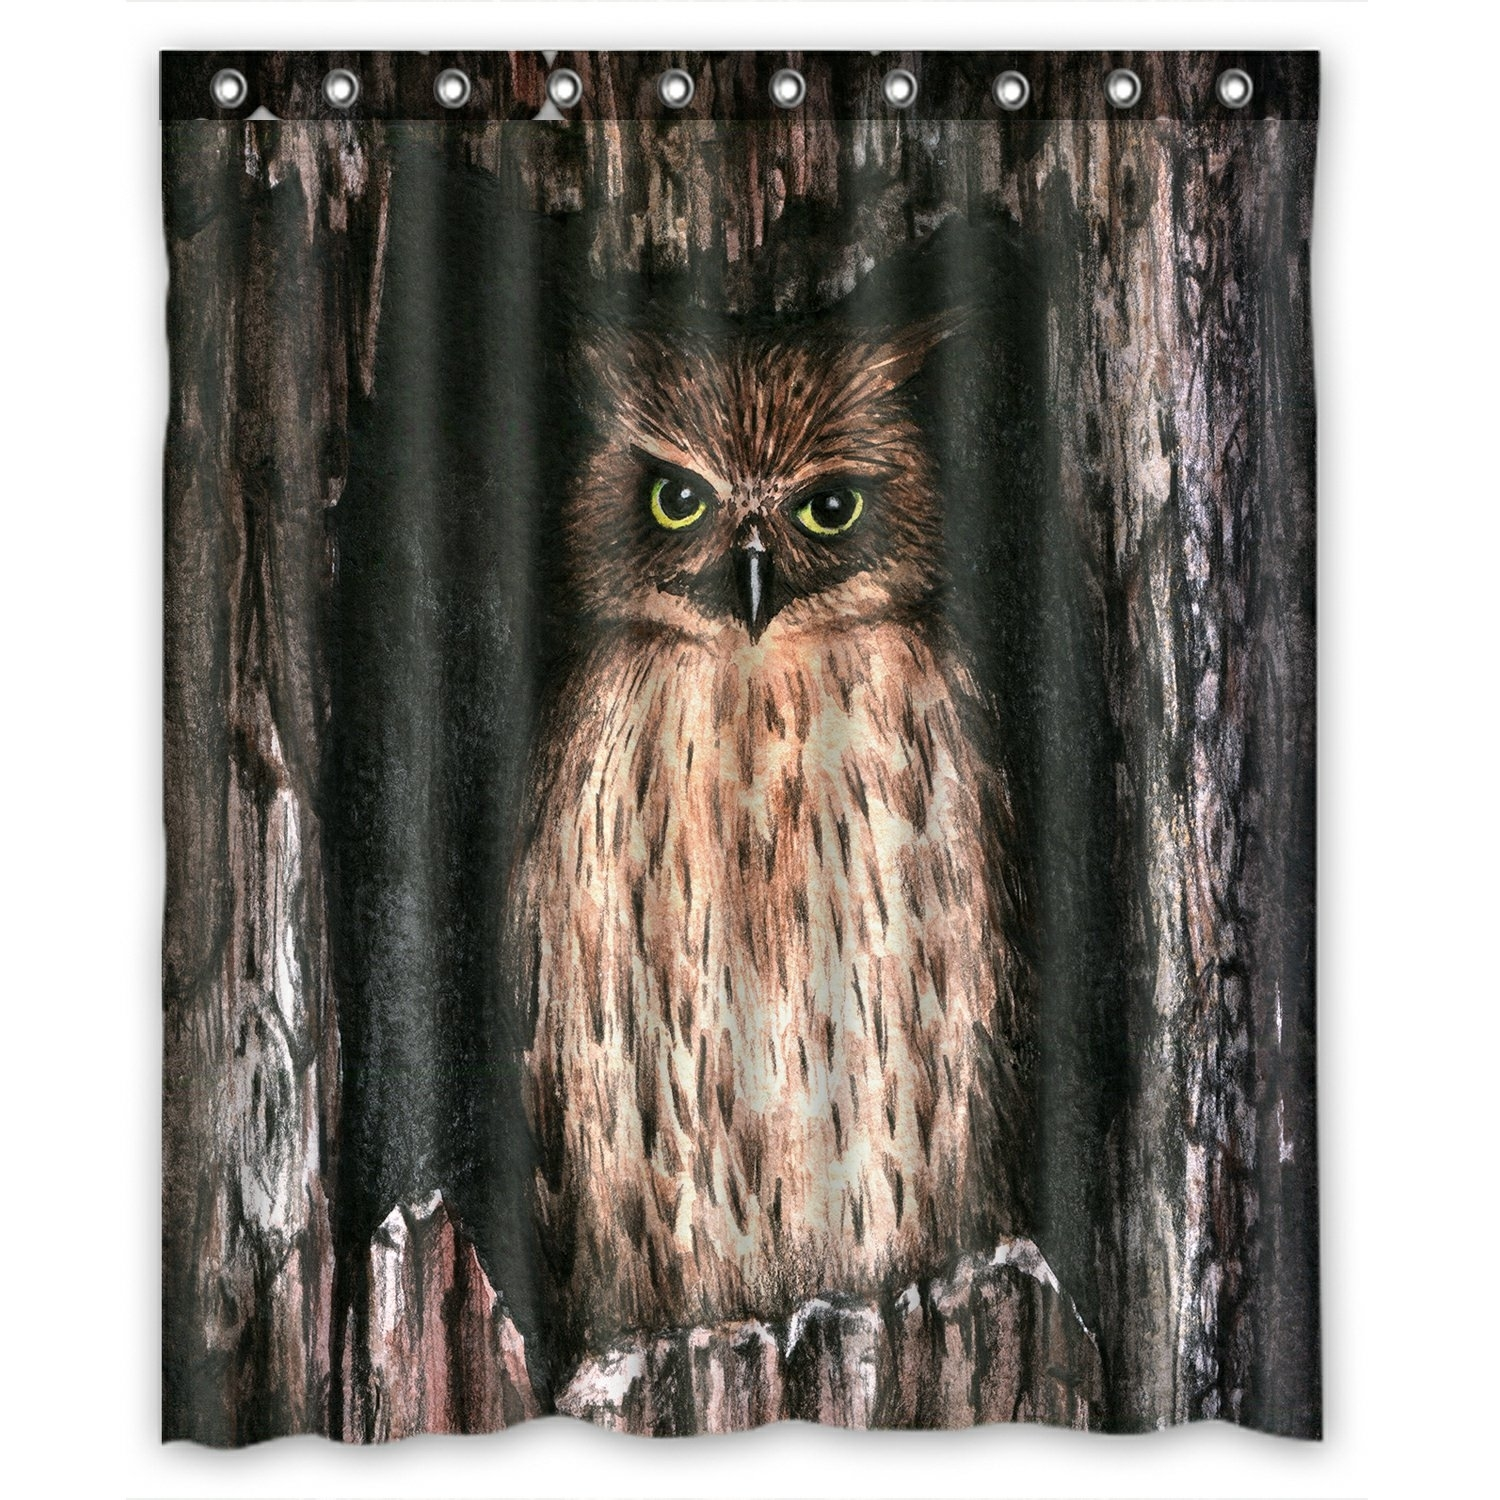 Watercolor Animal Shower Curtain, Cool Owl Shower Curtain 60x72 inch